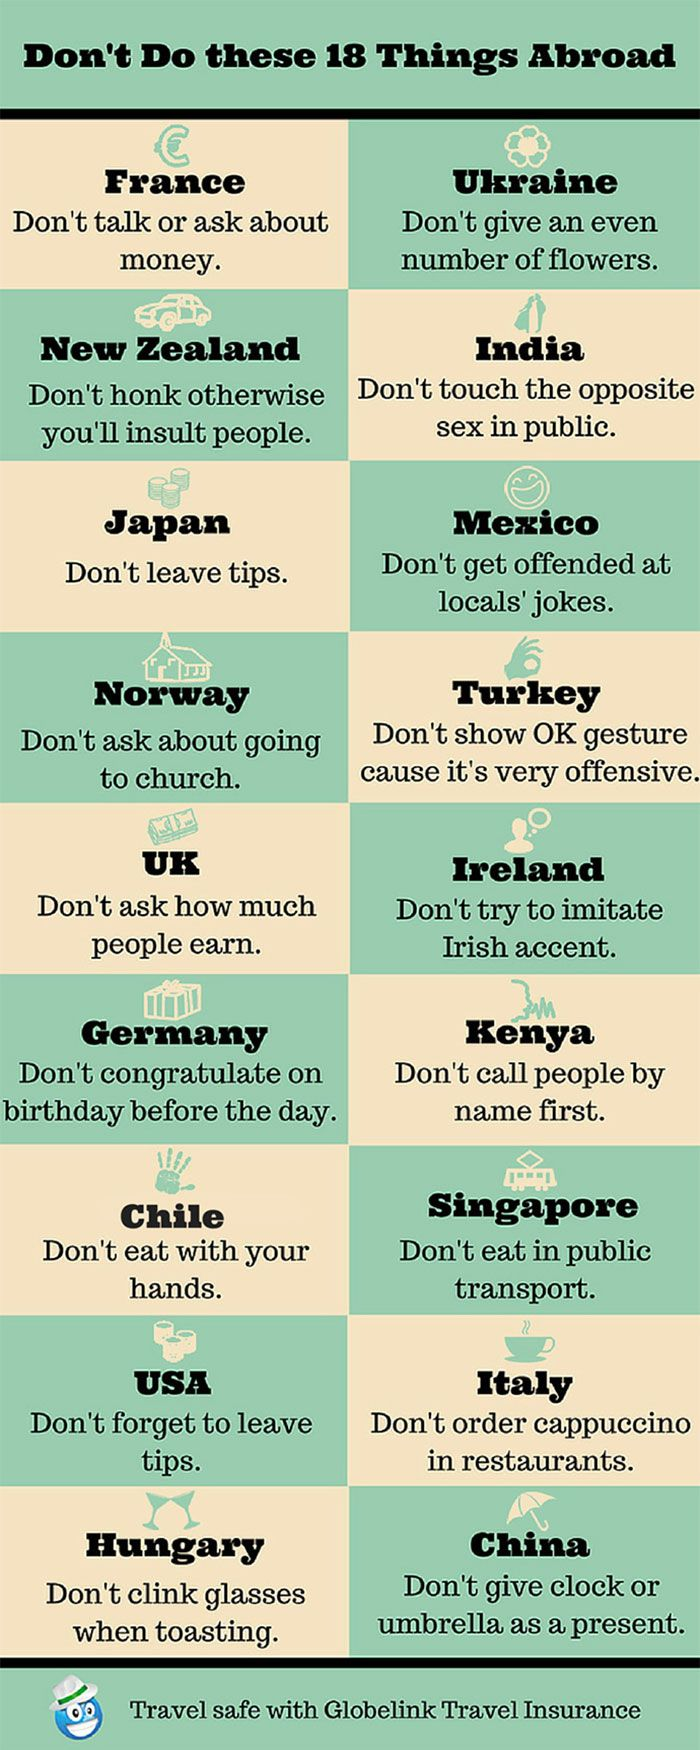 18 Things You Shouldn't Do Abroad